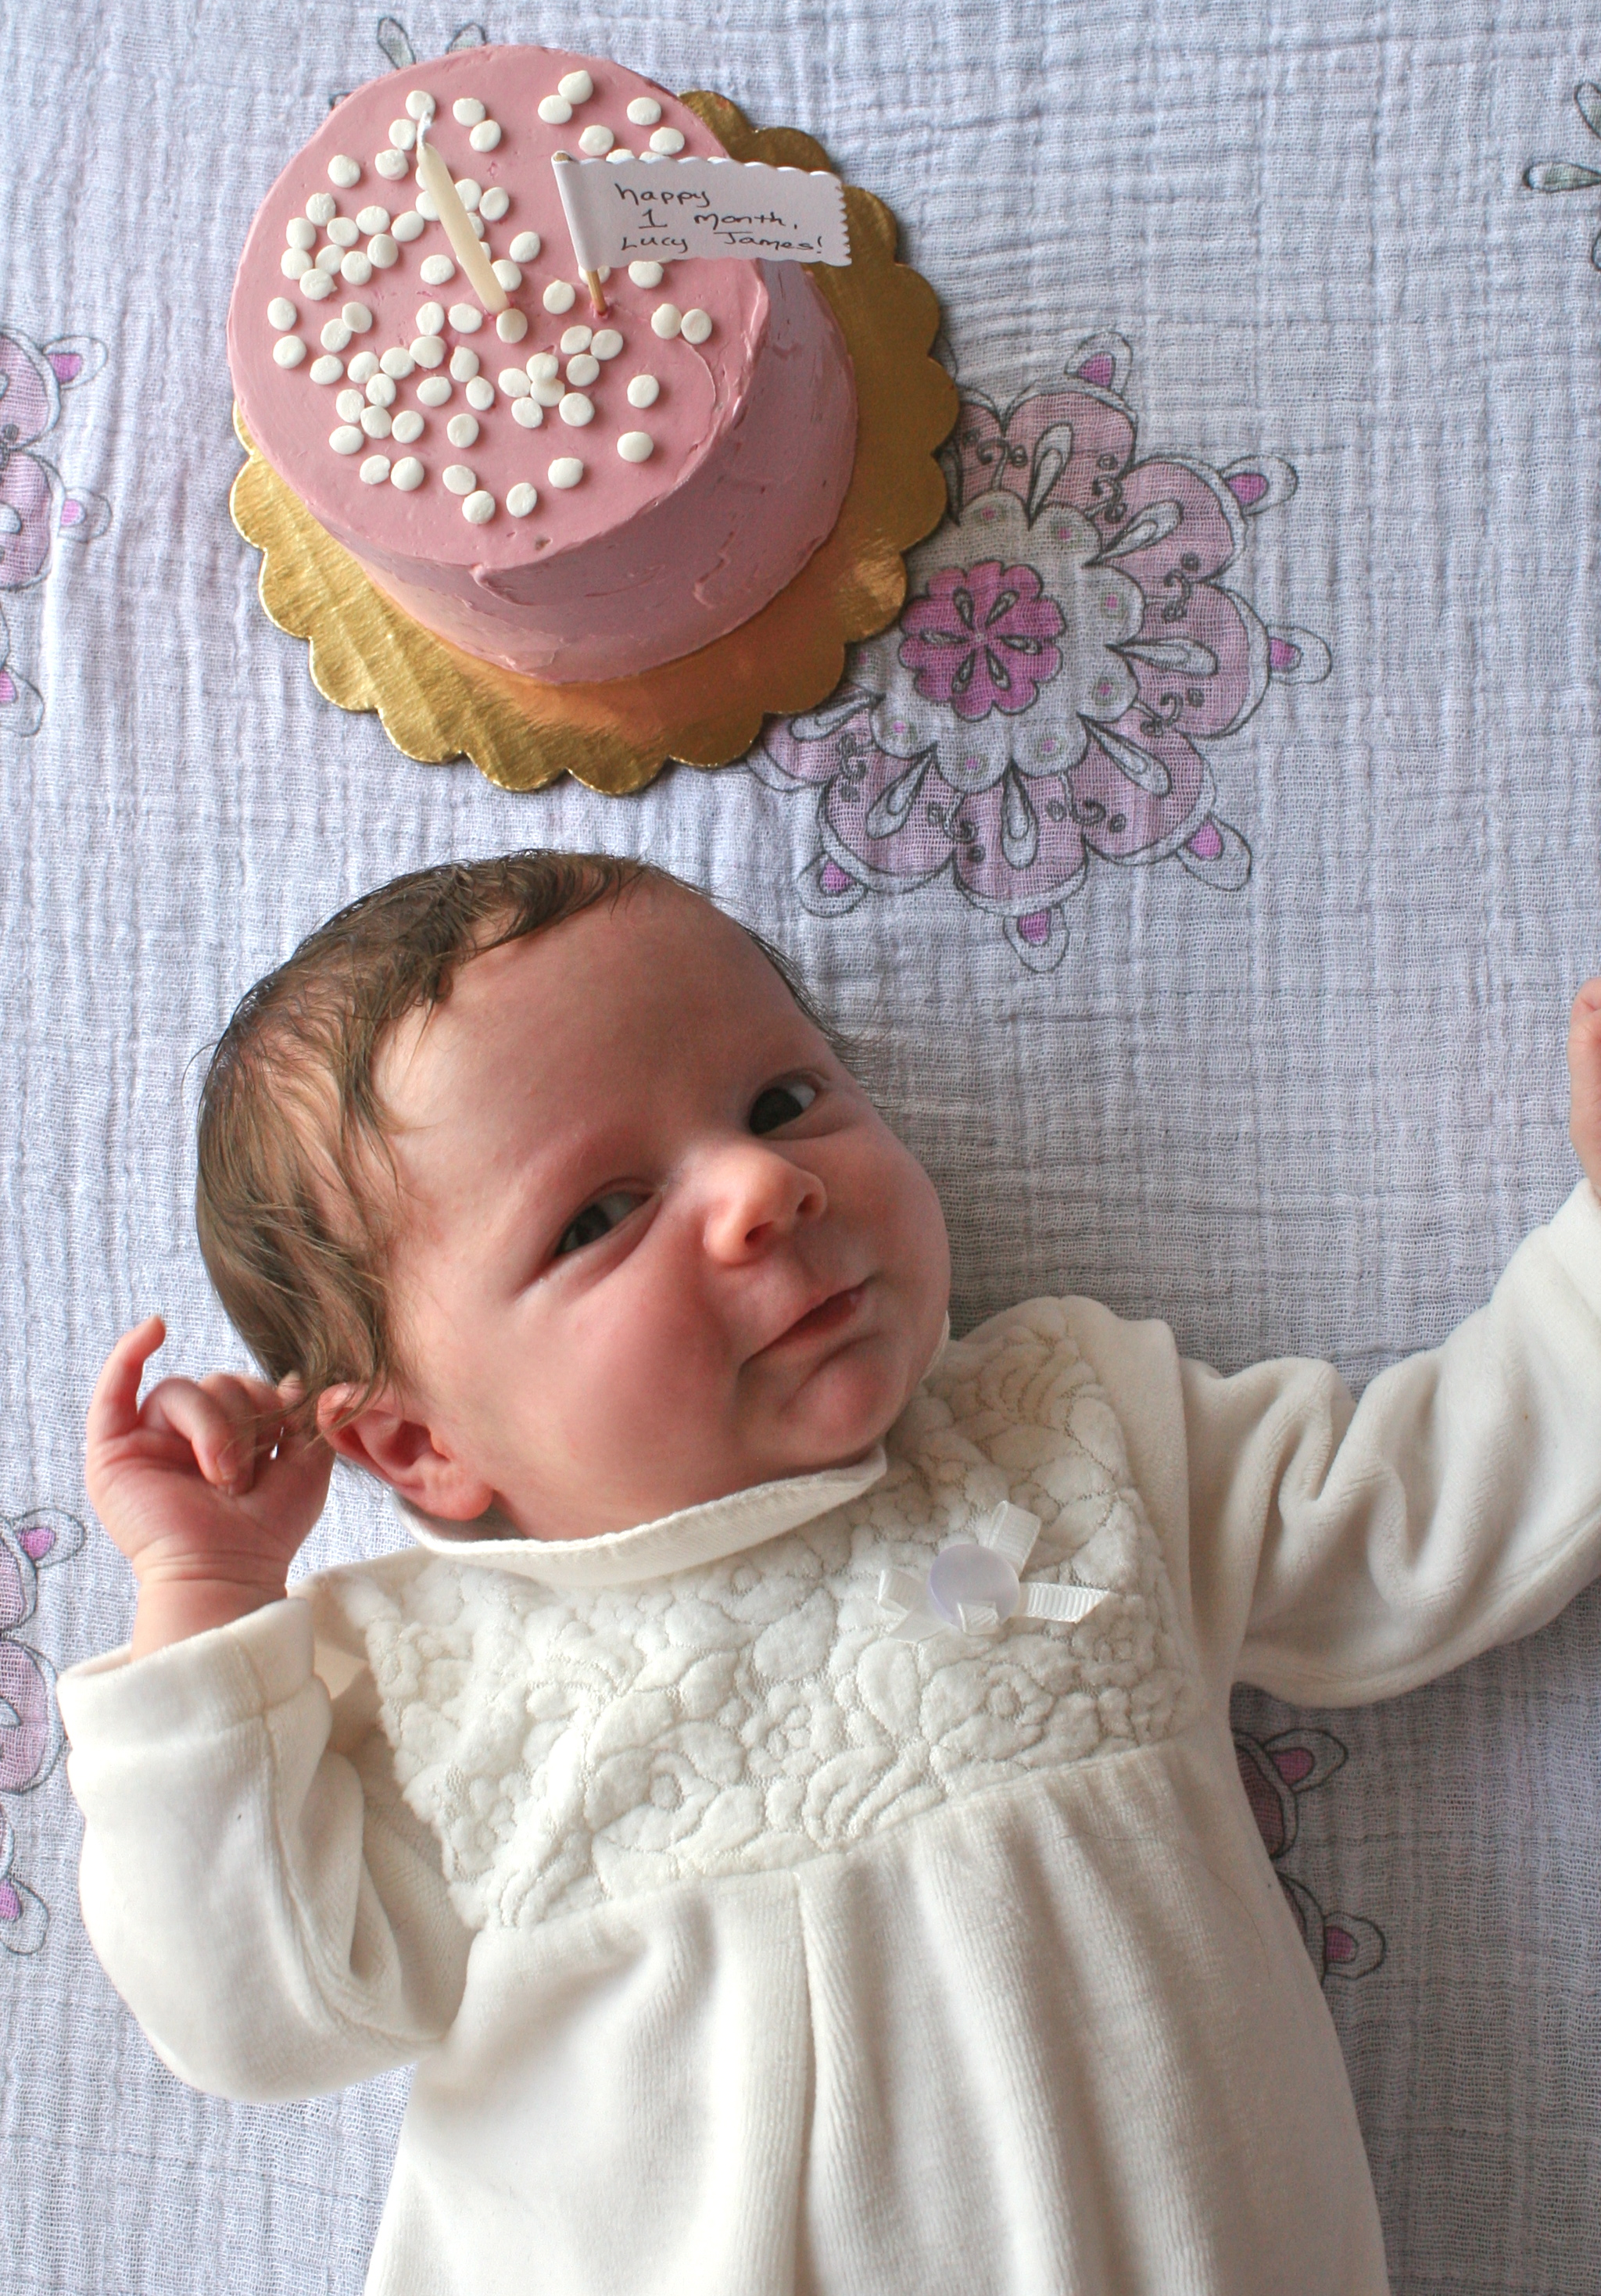 All Natural Pink baby Cake